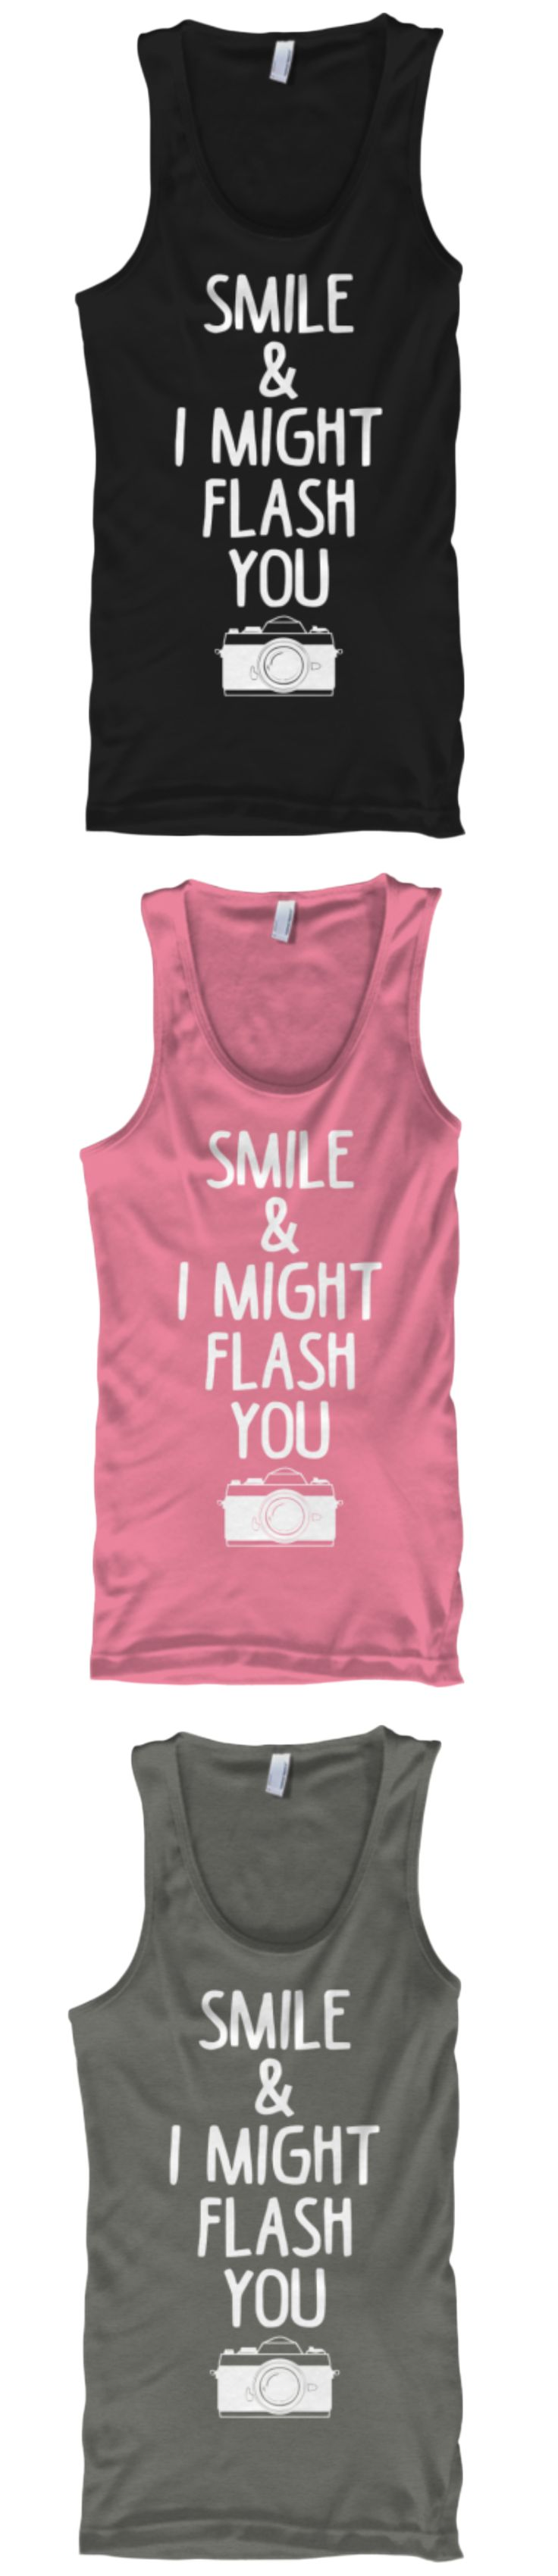 Smile & I Might Flash You | Limited Edition Tee | Click Image To Purchase